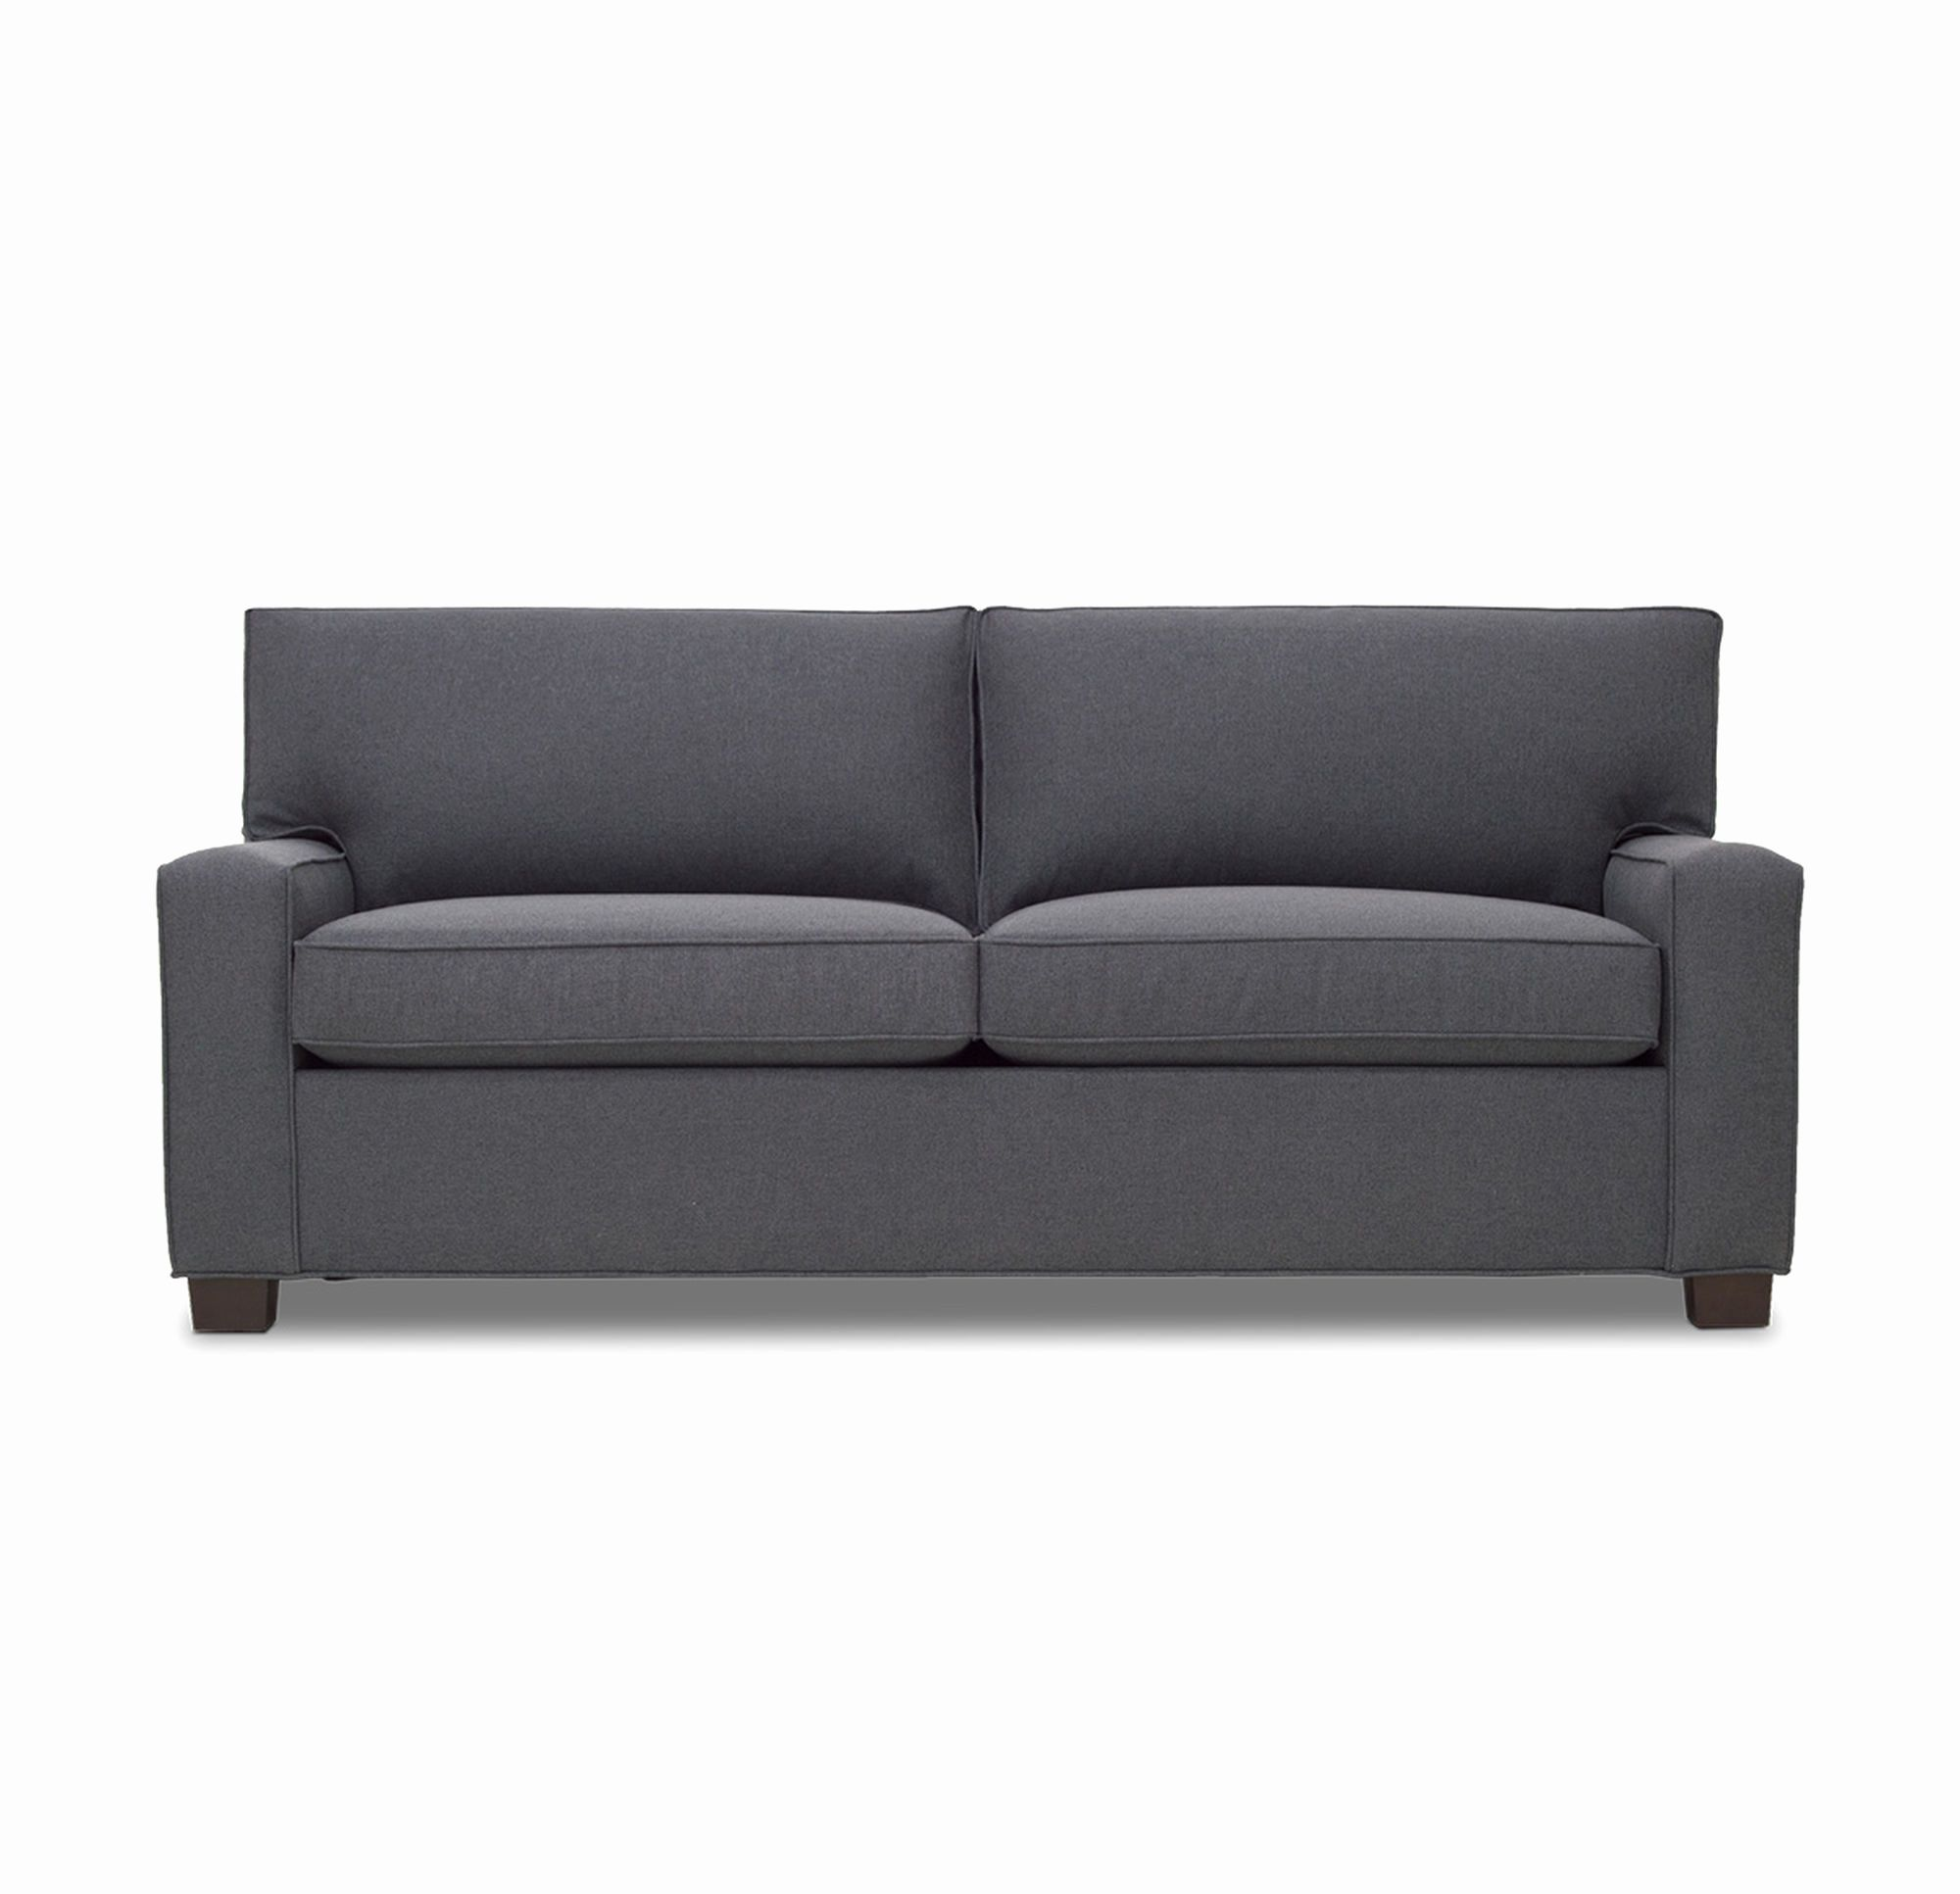 Amazing Loveseat Sleeper Sofa Pics Beautiful Alex Luxe Queen Check More